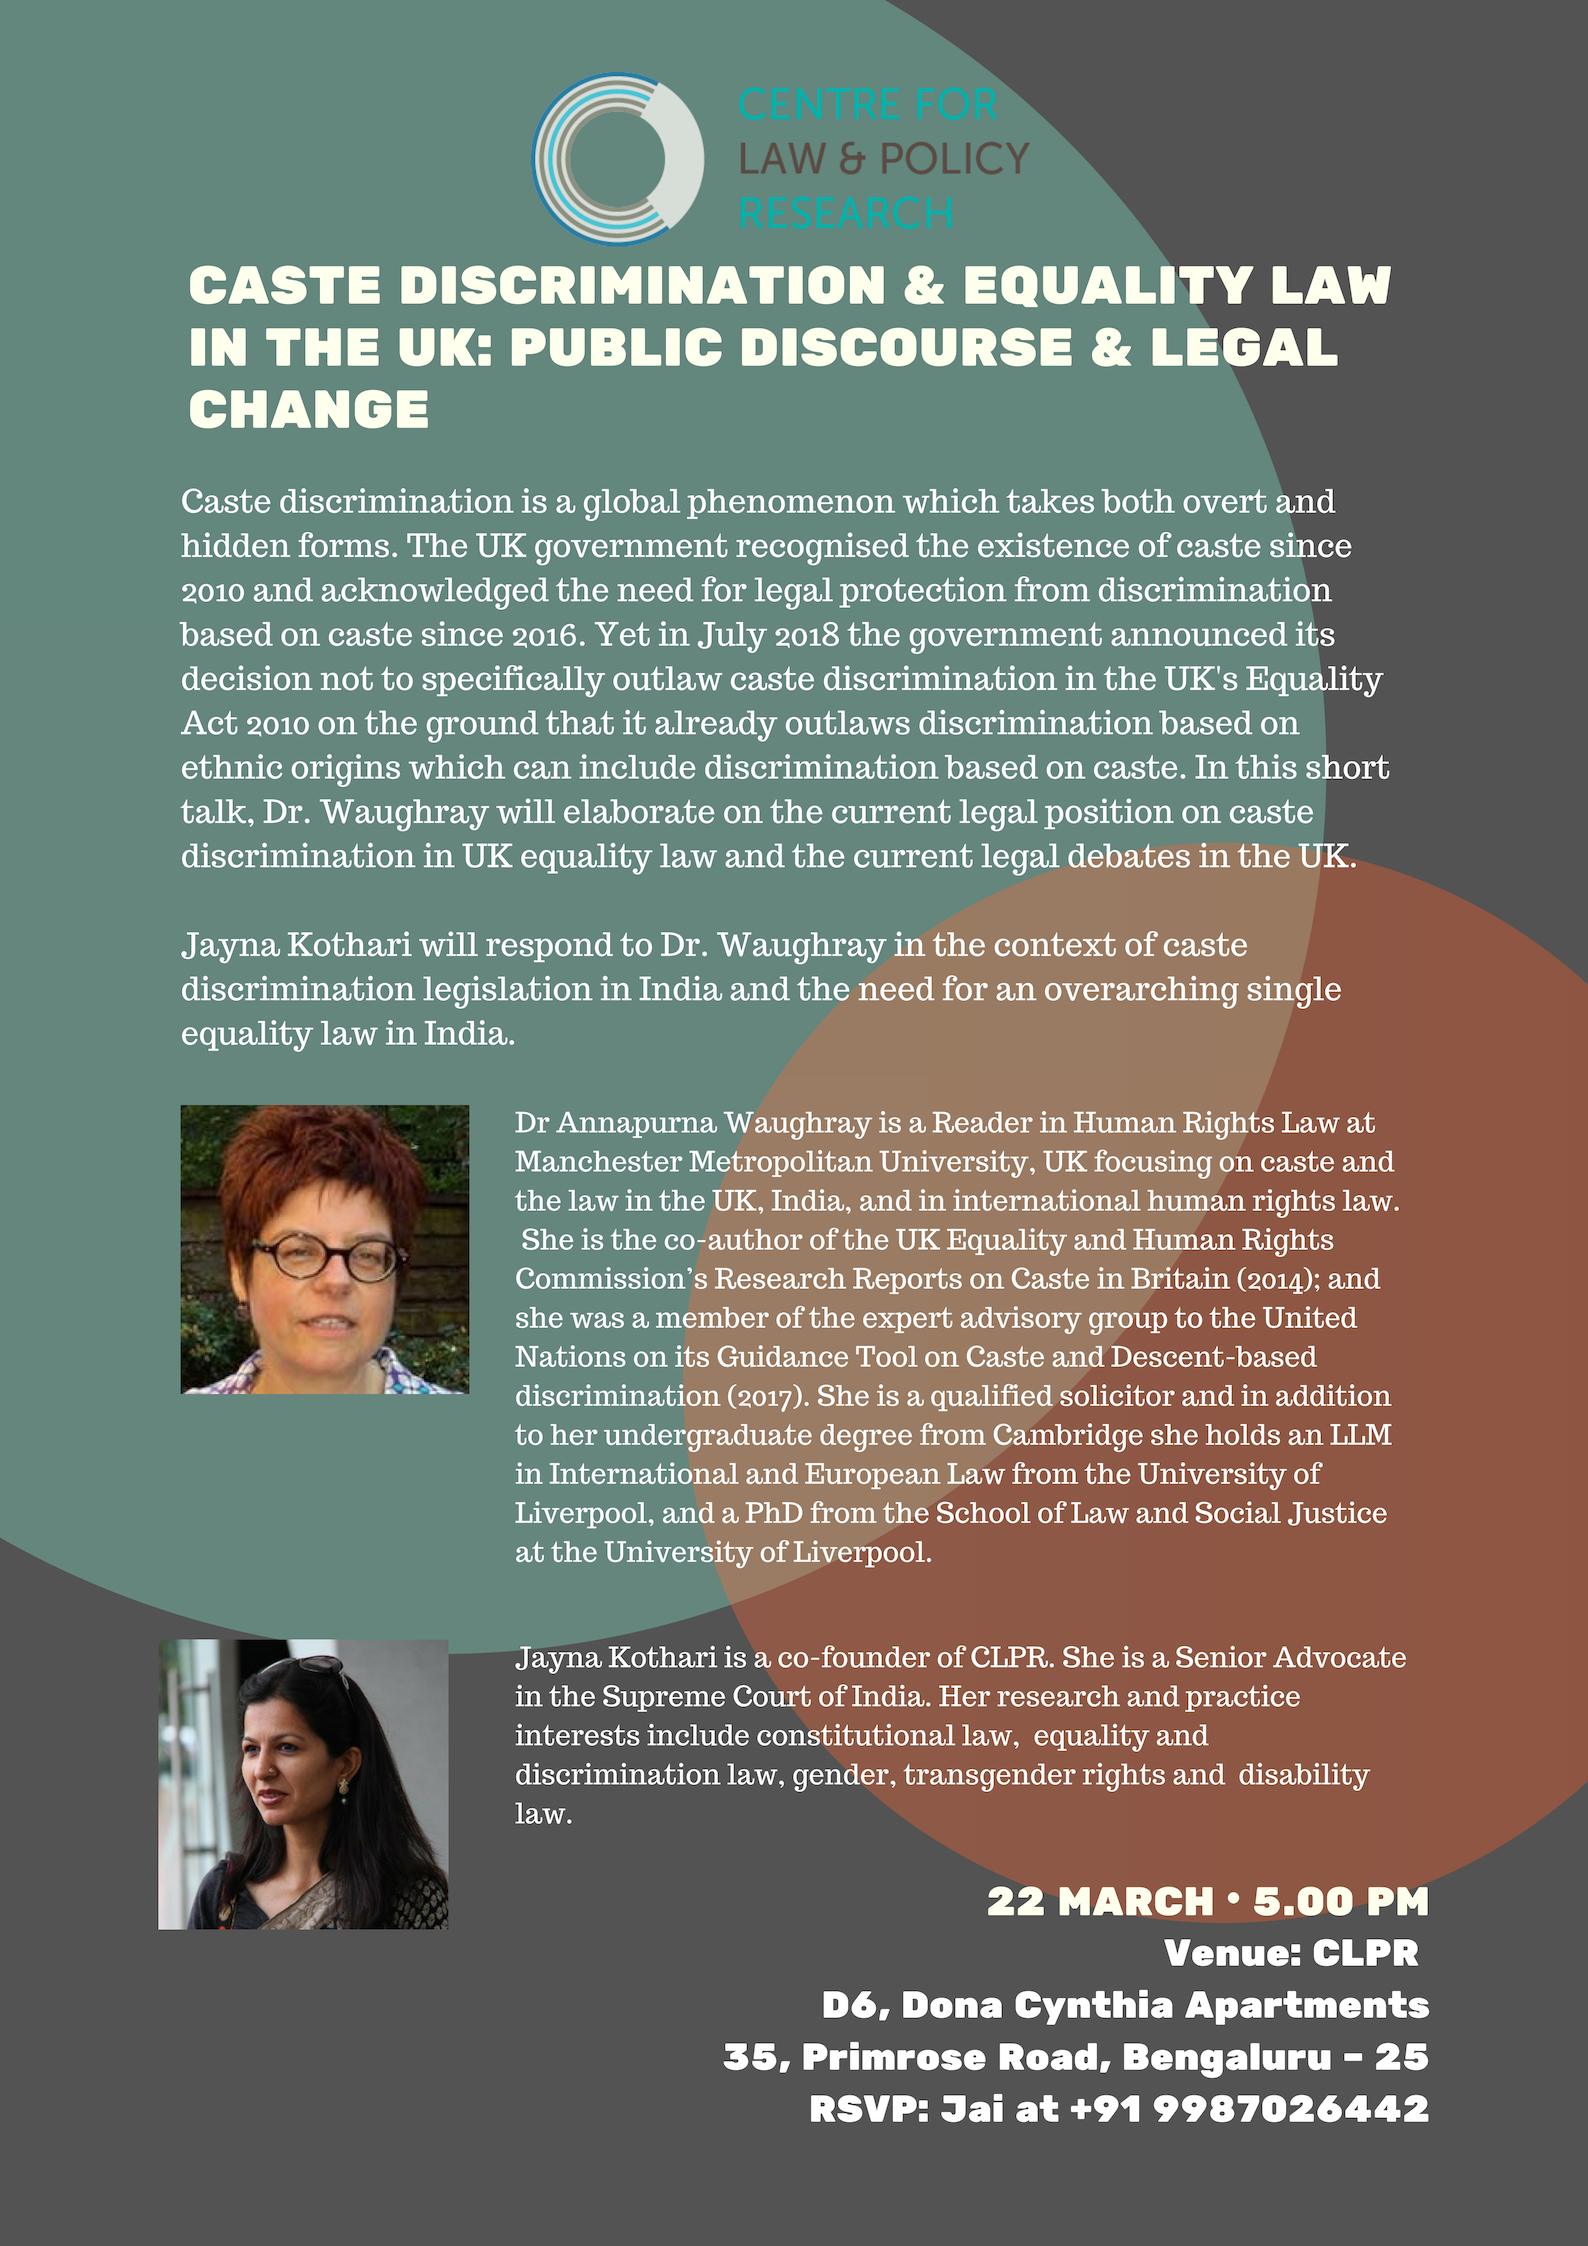 Poster for Dr Annapurna Waughray's lecture on Caste Discrimination & Equality Law in the UK. She is a Reader in Human Rights Law from MMU, UK focusing on caste discrimination. In this talk, she will be accompanied by Snr Adv Jayna Kothari.